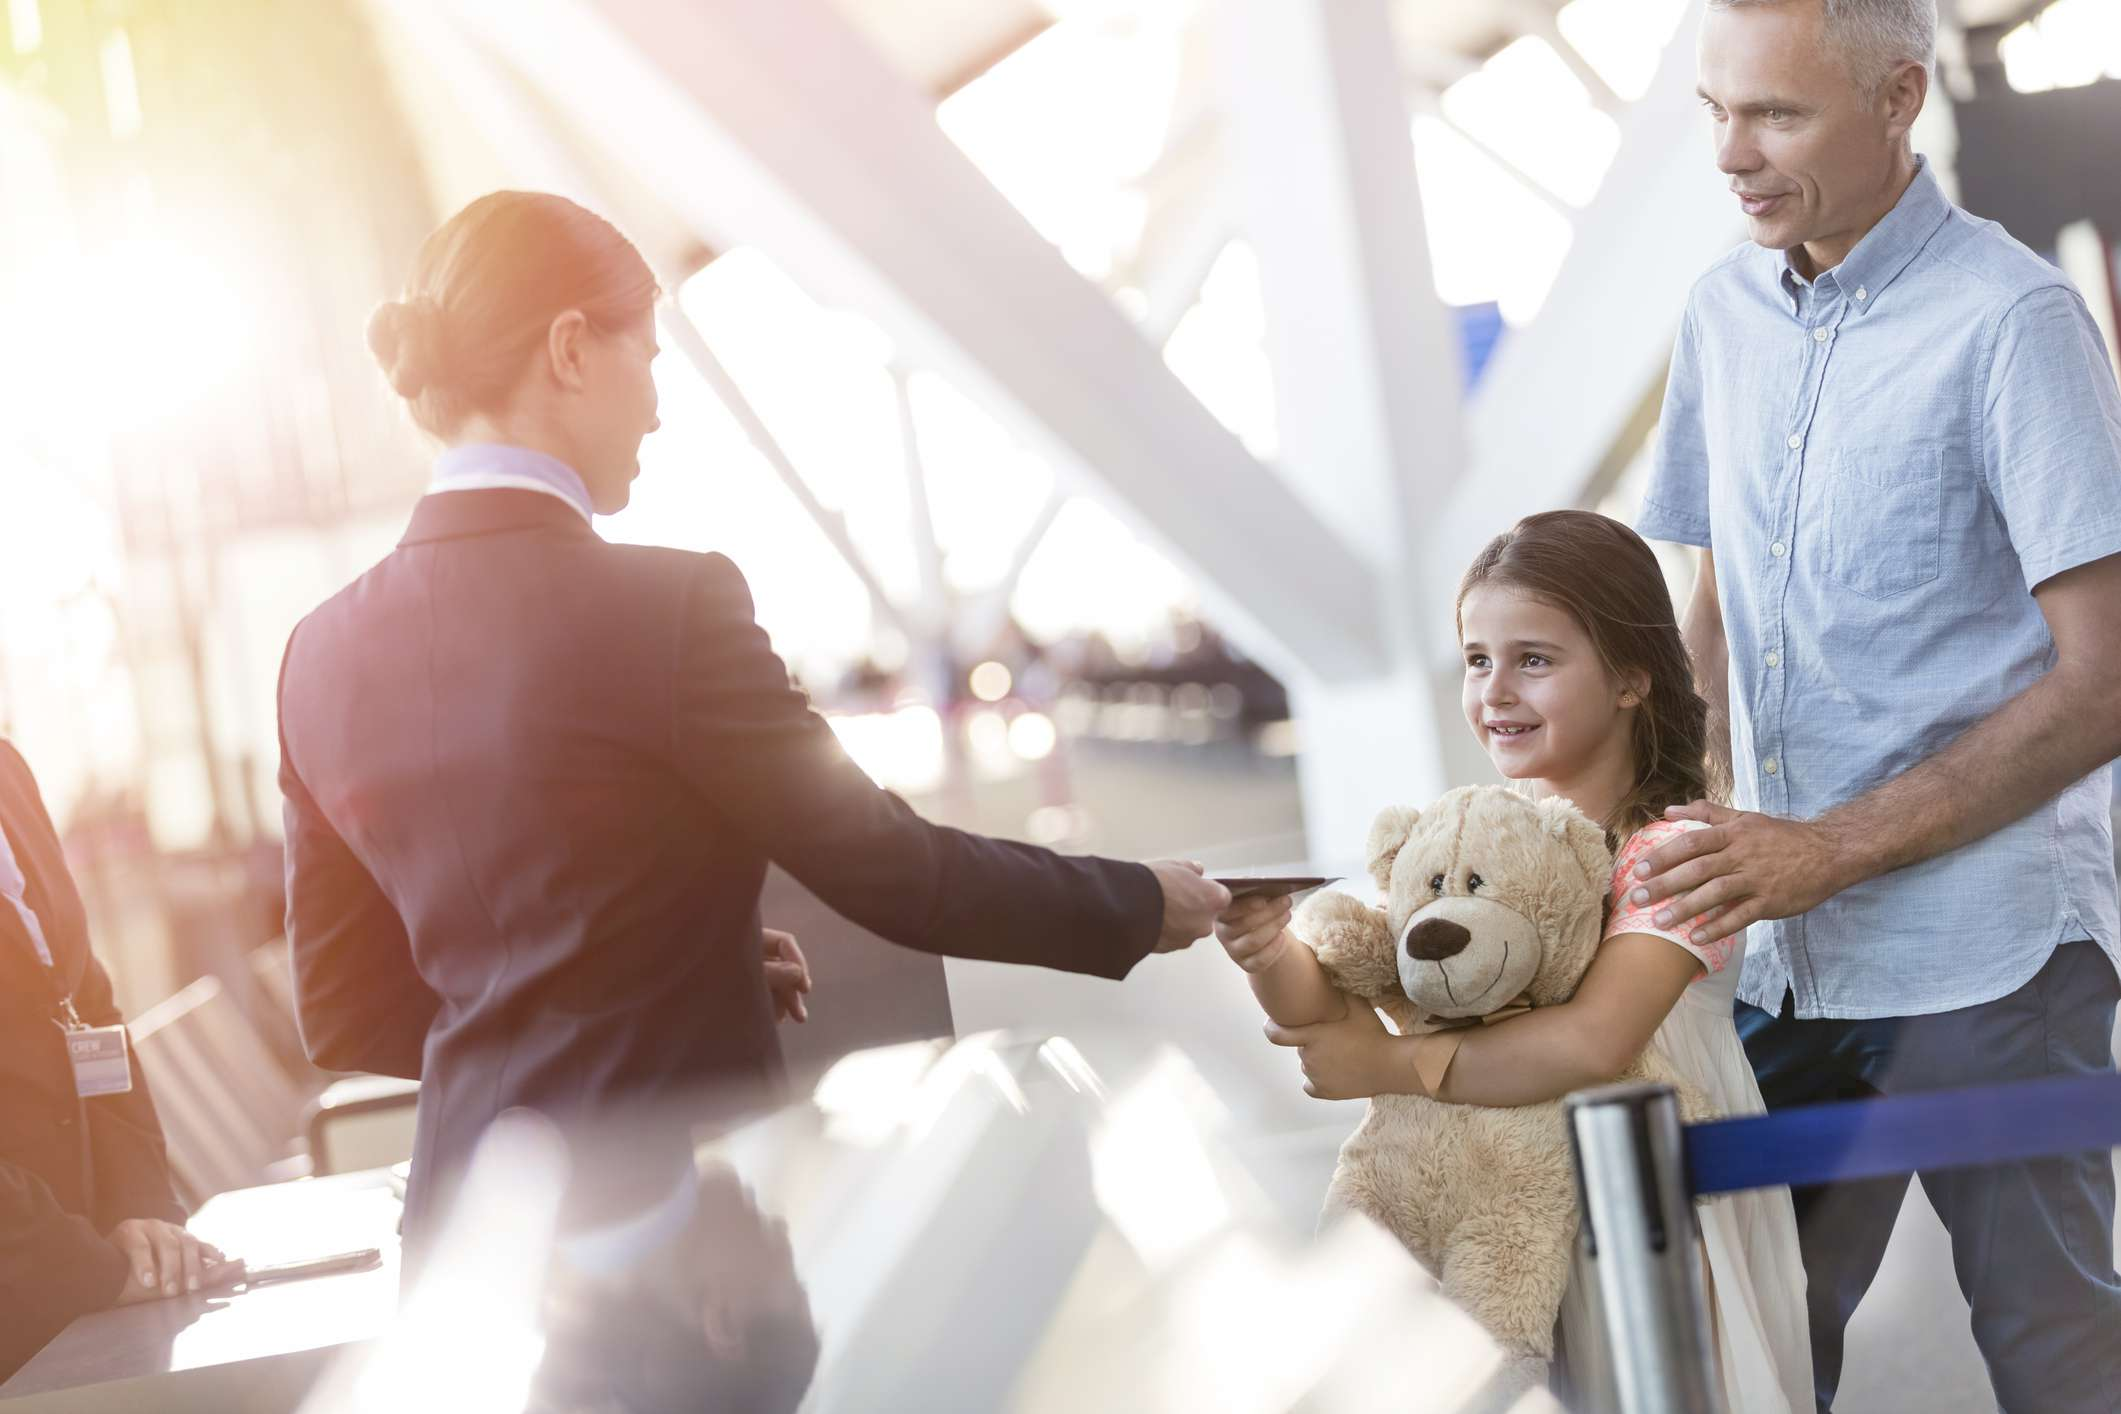 Girl with a teddy bear at airport